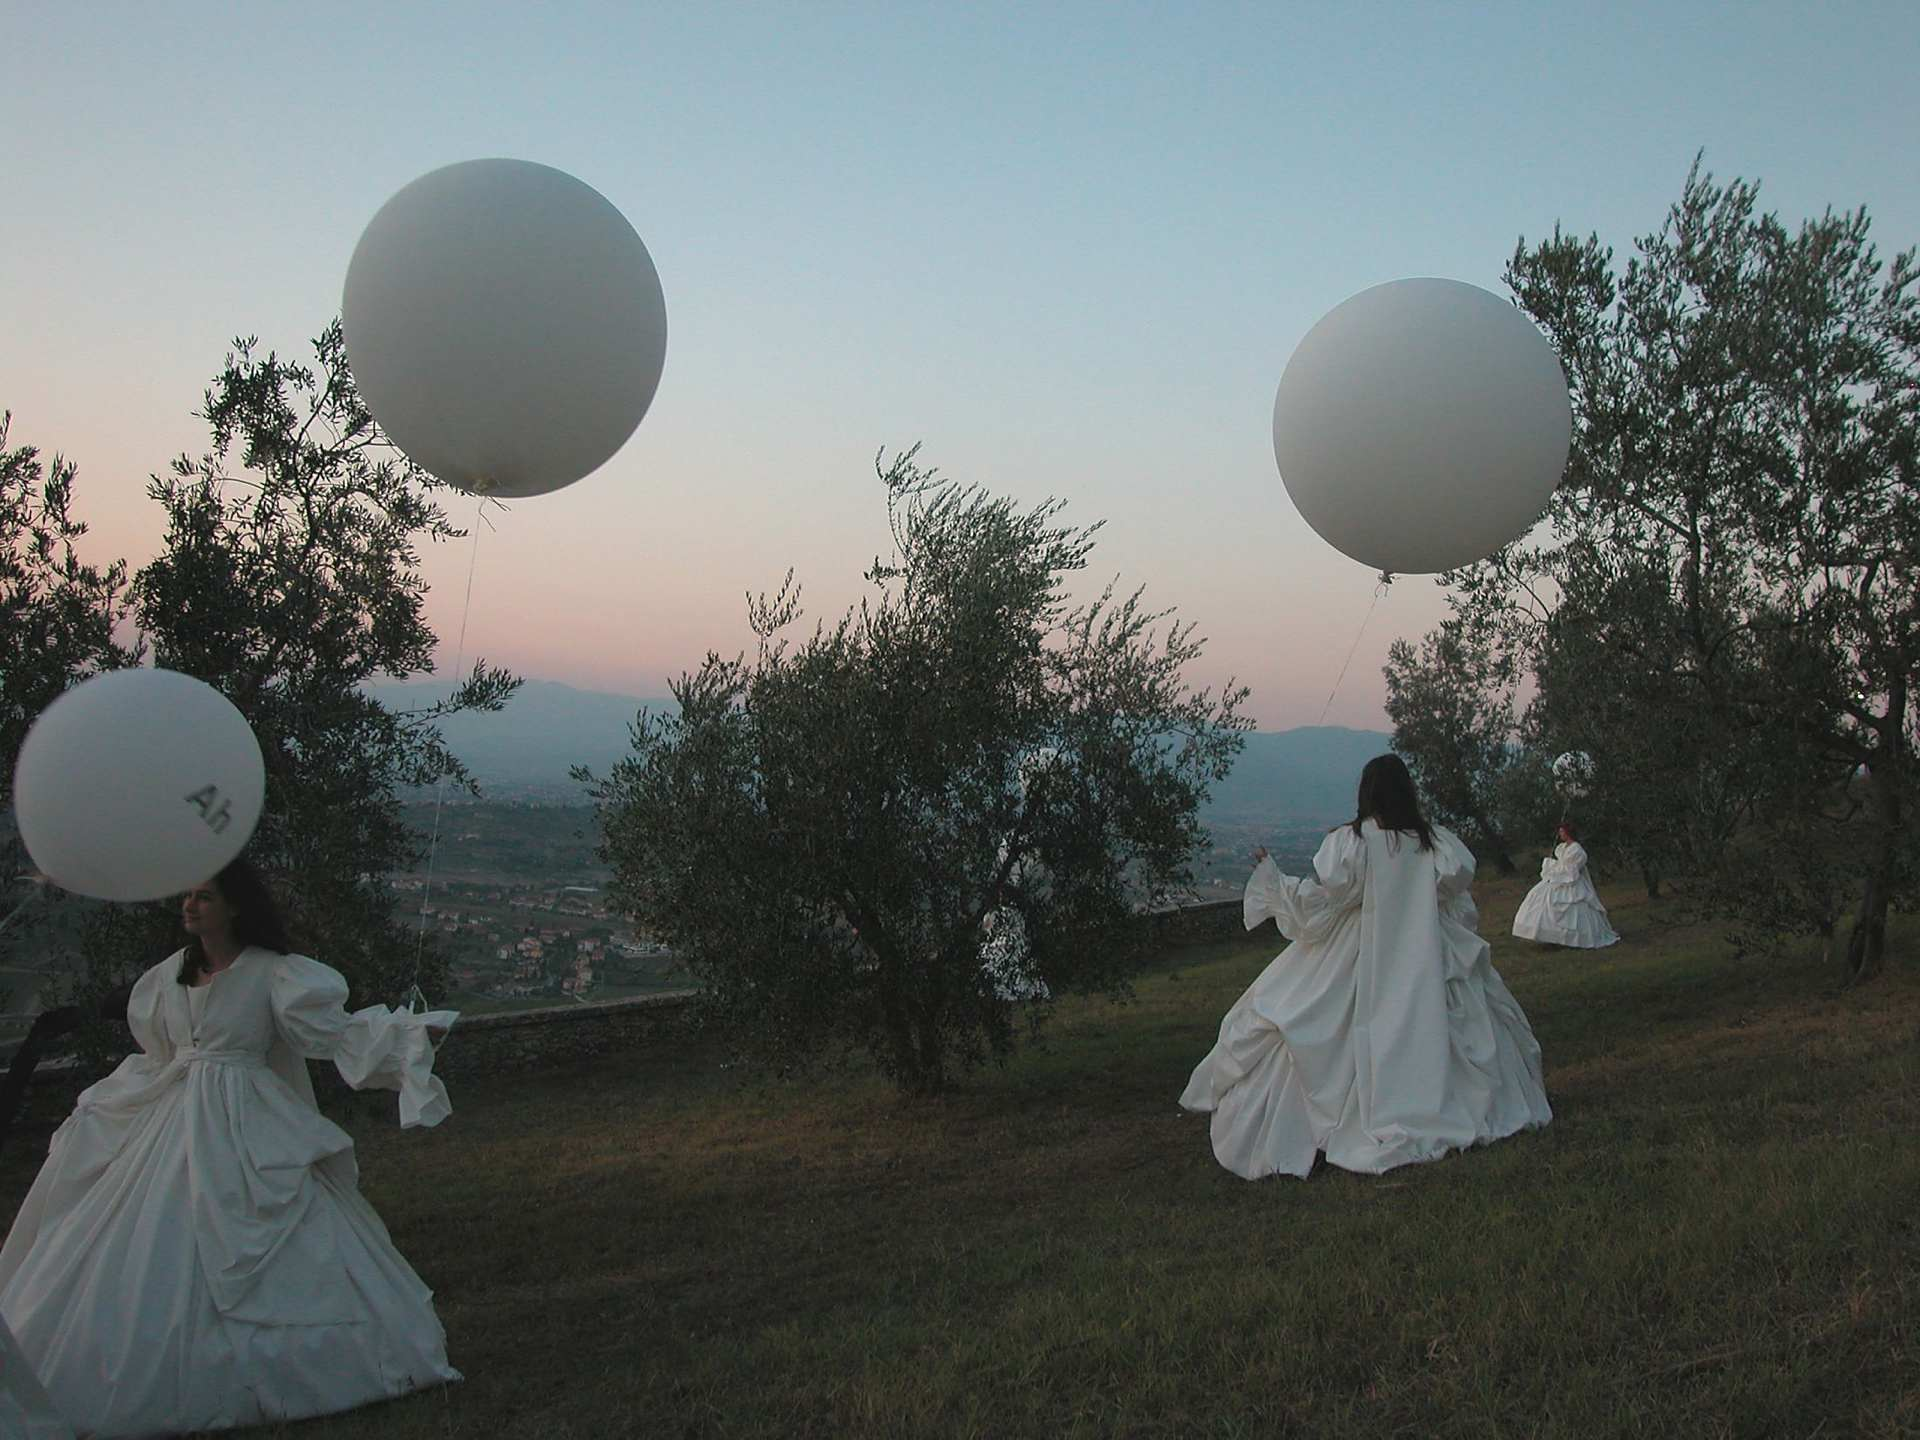 performance poetry on the theme of waiting and absence, lo soffia il cielo, cosi, carmignano, italy